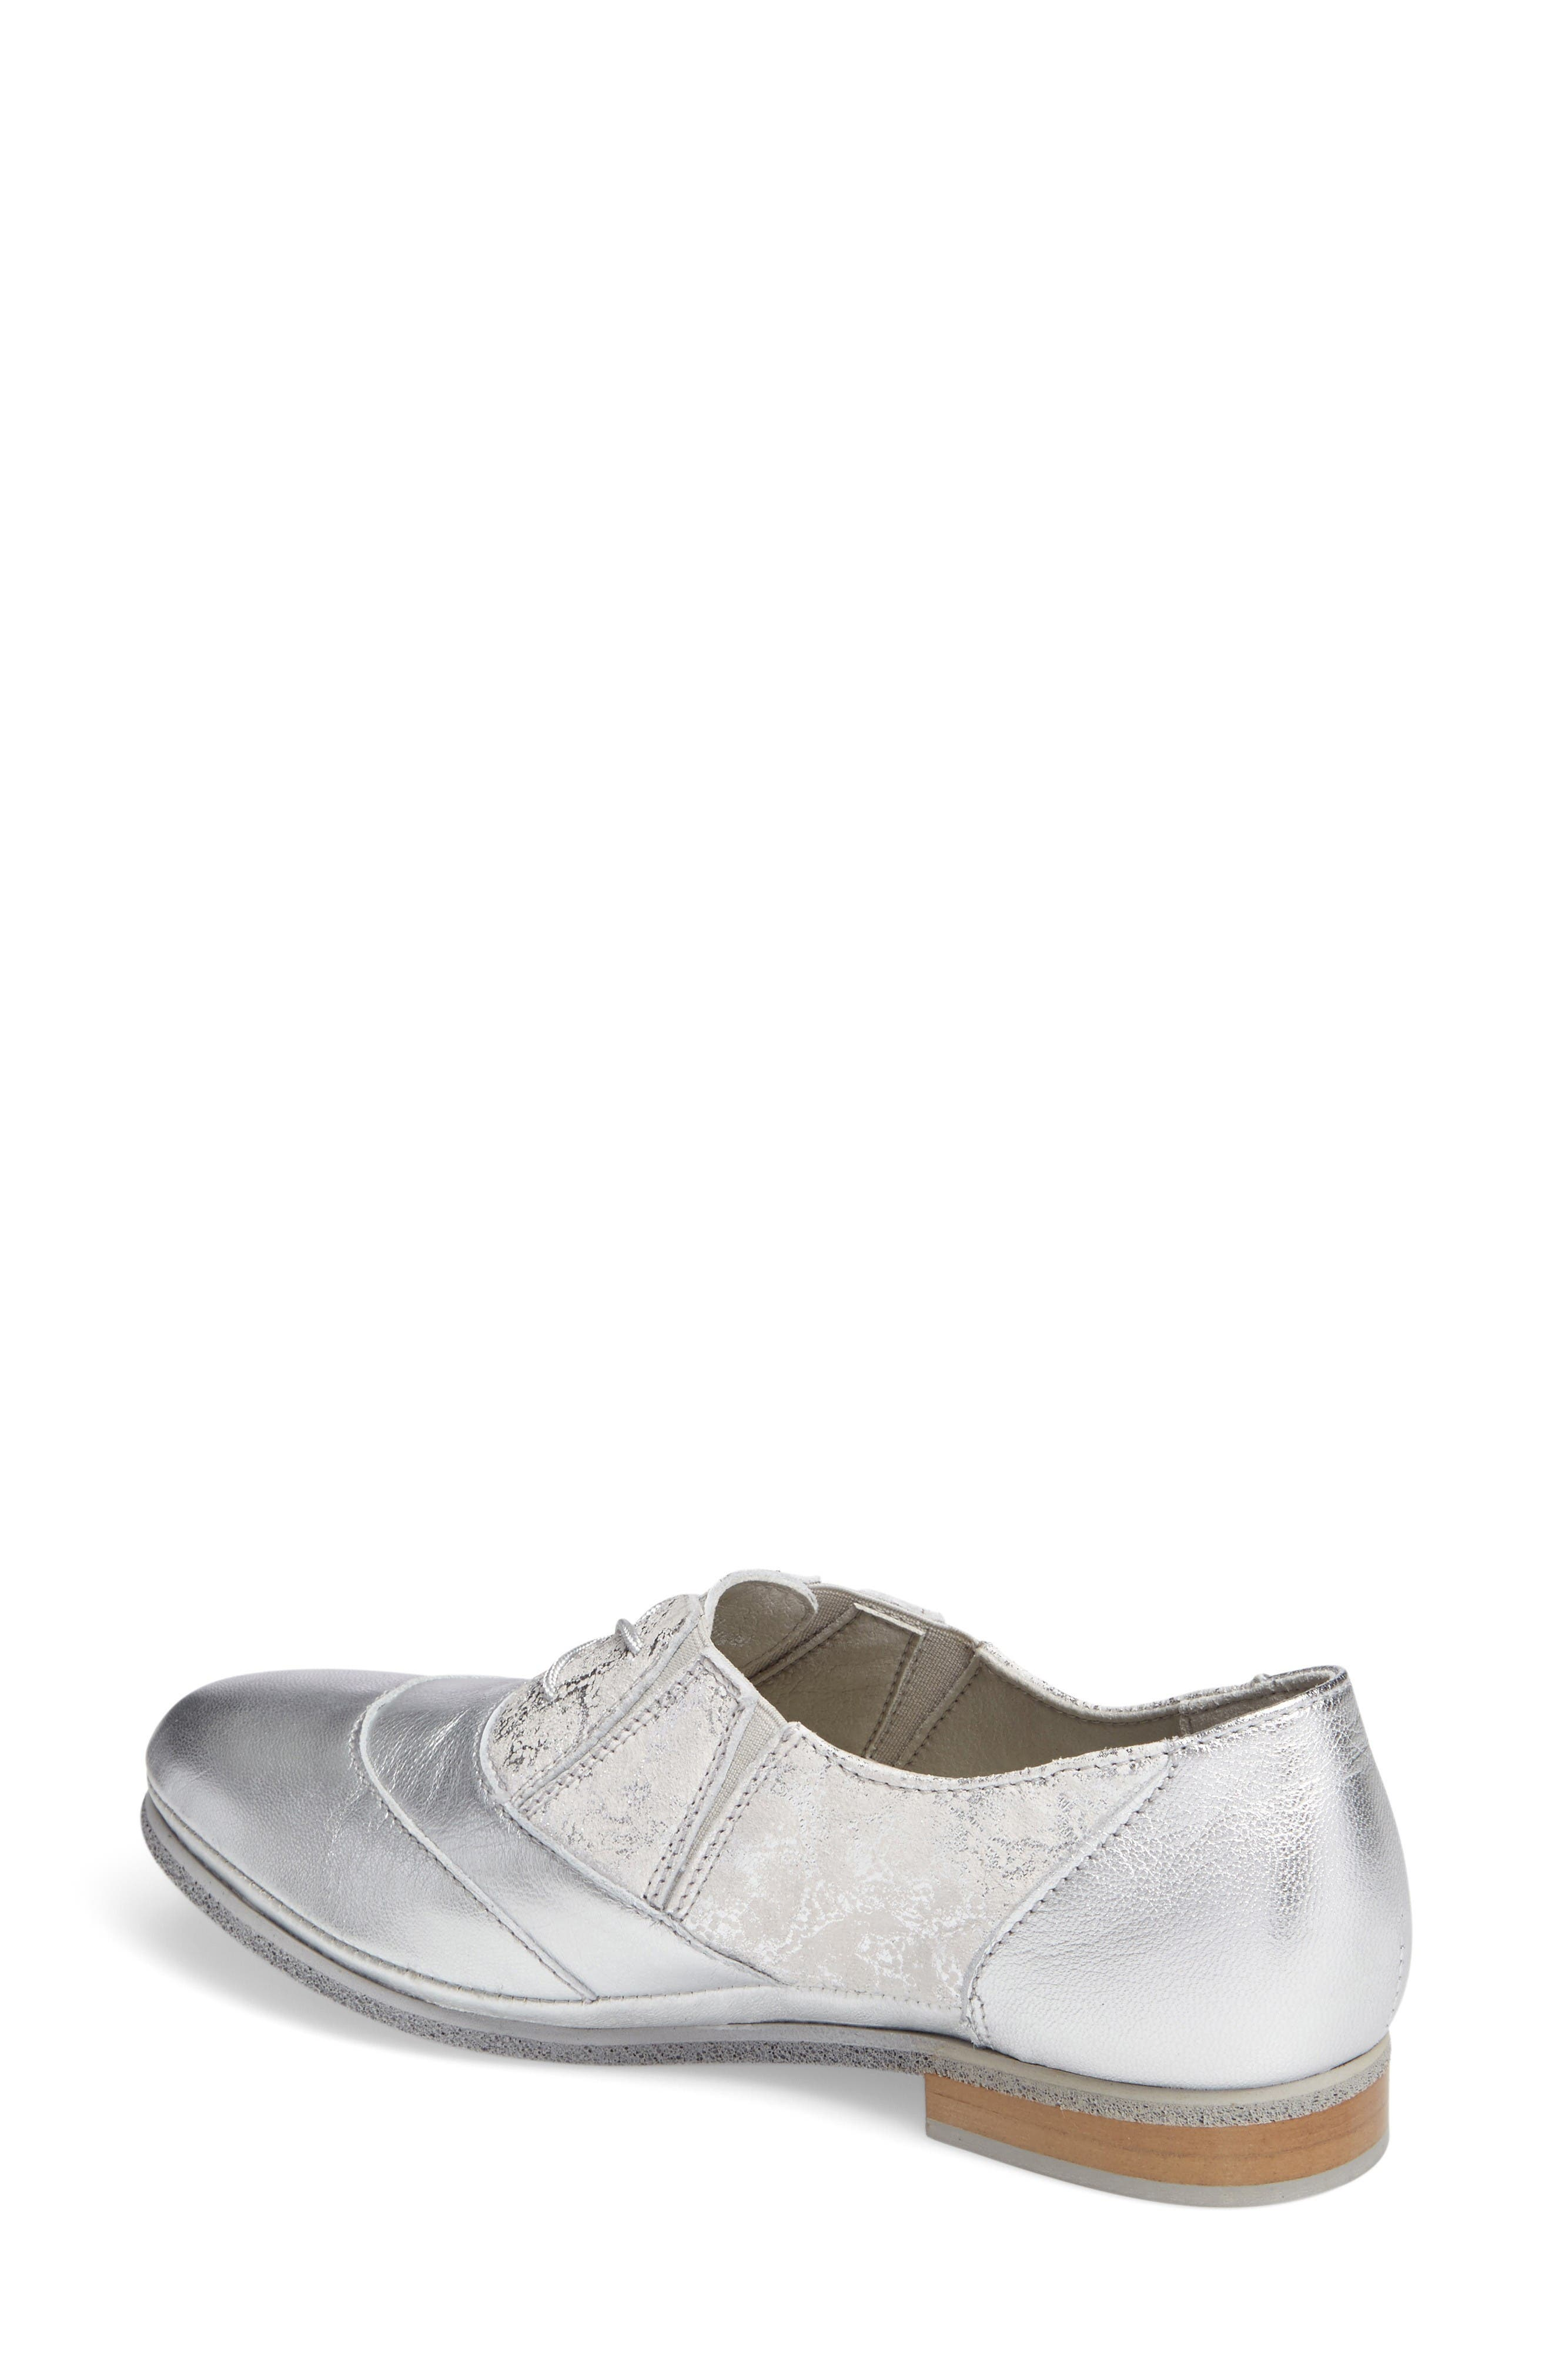 Alternate Image 2  - CLOUD Bliss Lace-Up Oxford (Women)